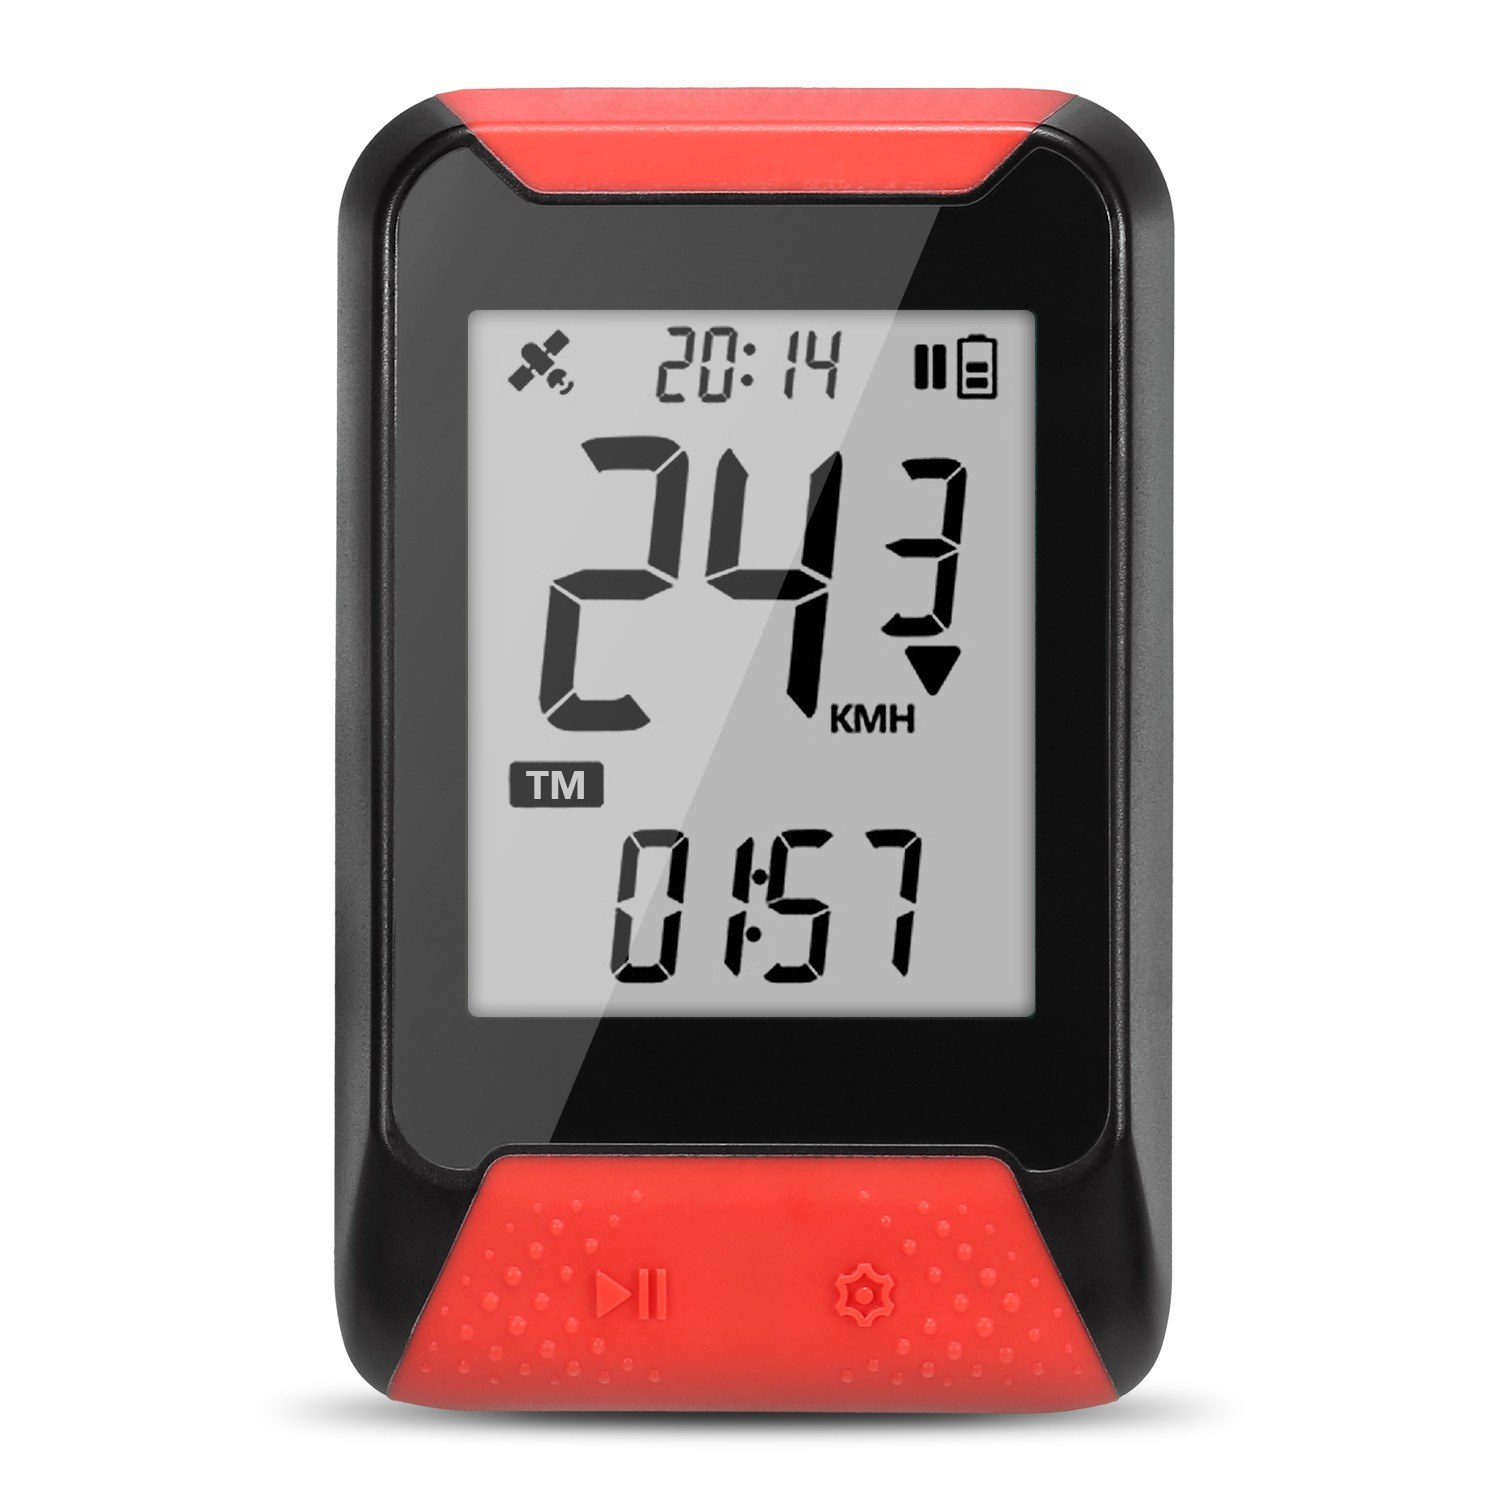 Smart GPS Cycling Computer Bike Wireless Digital Speedometer Auto Backlight IPX7 Accurate Bike Computer Odometer